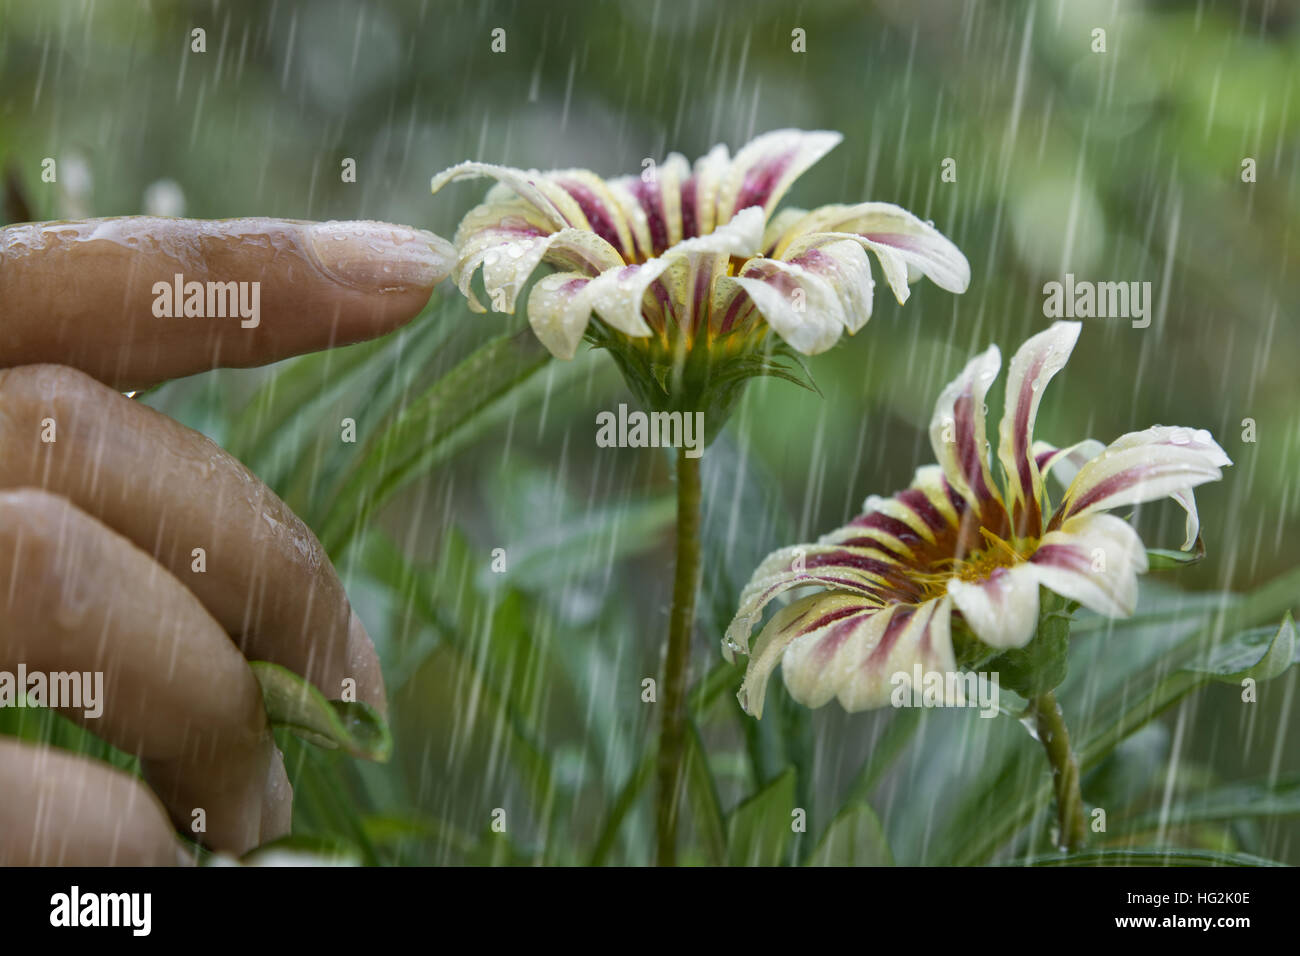 Woman touching a flower in rain - Stock Image